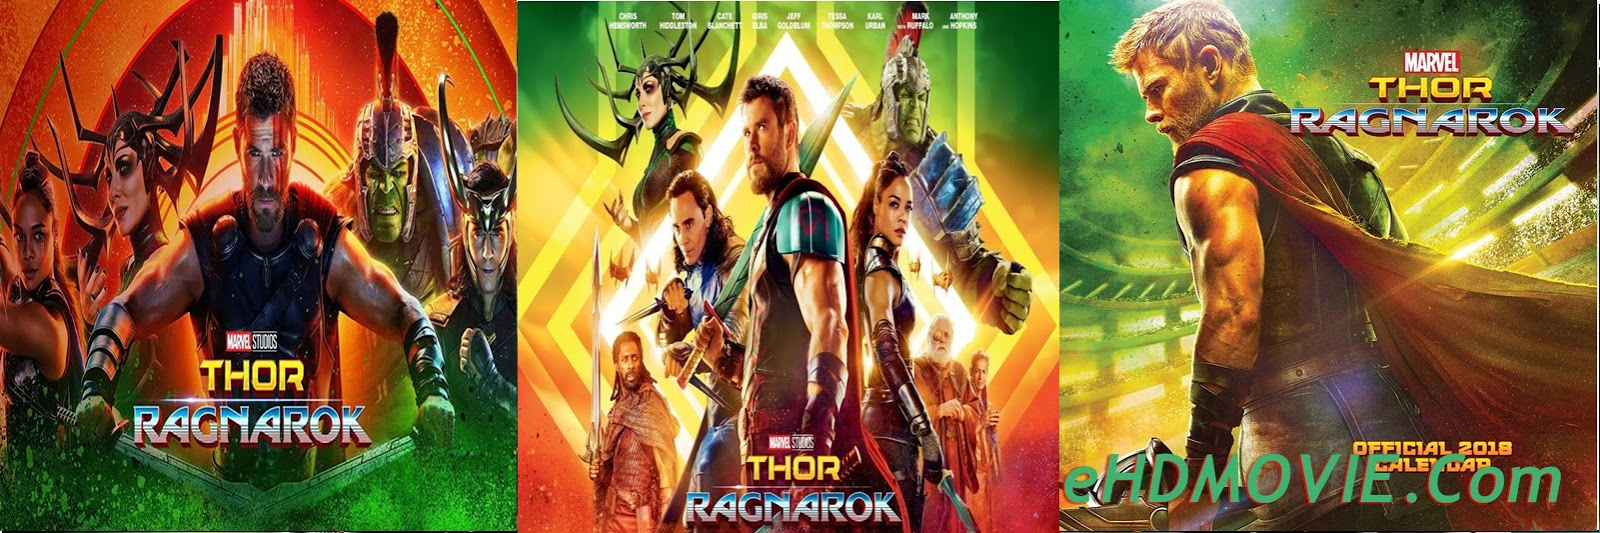 Thor Ragnarok 2017 Full Movie Dual Audio [Hindi – English] 720p – 480p ORG BRRip 450MB – 1GB ESubs Free Download